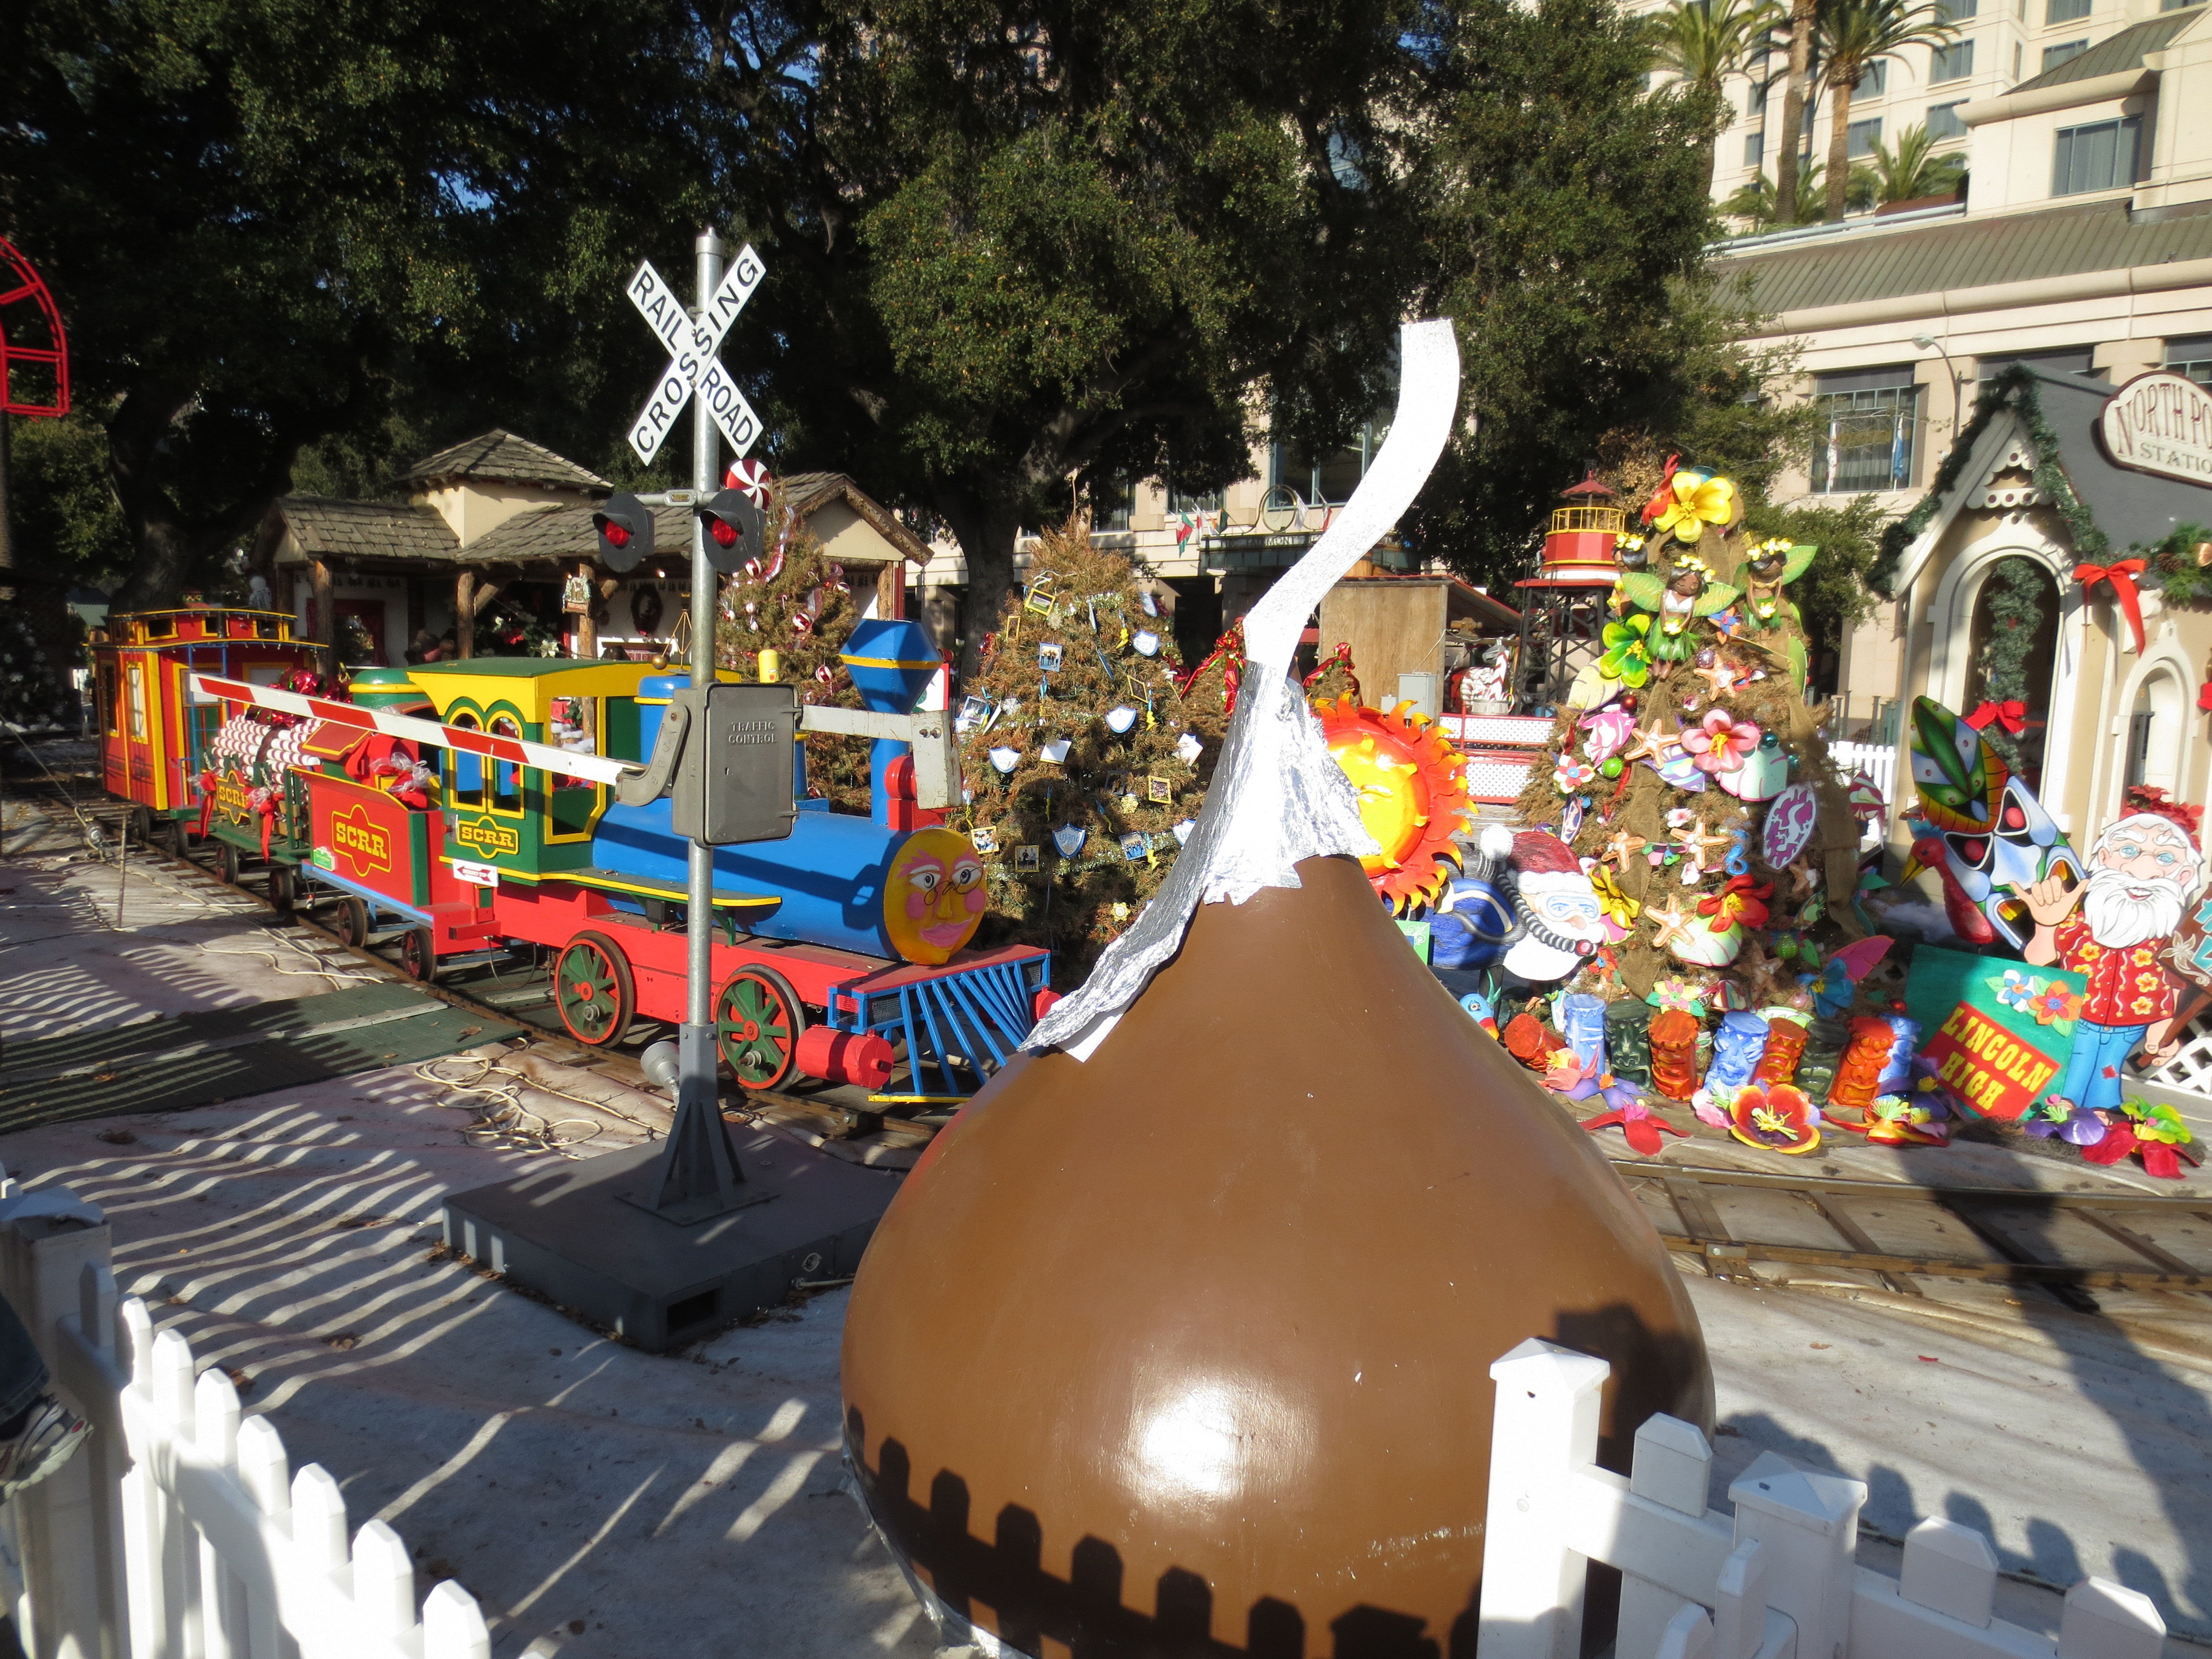 Christmas In The Park San Jose.Christmas In The Park A San Jose Tradition The Ranch On